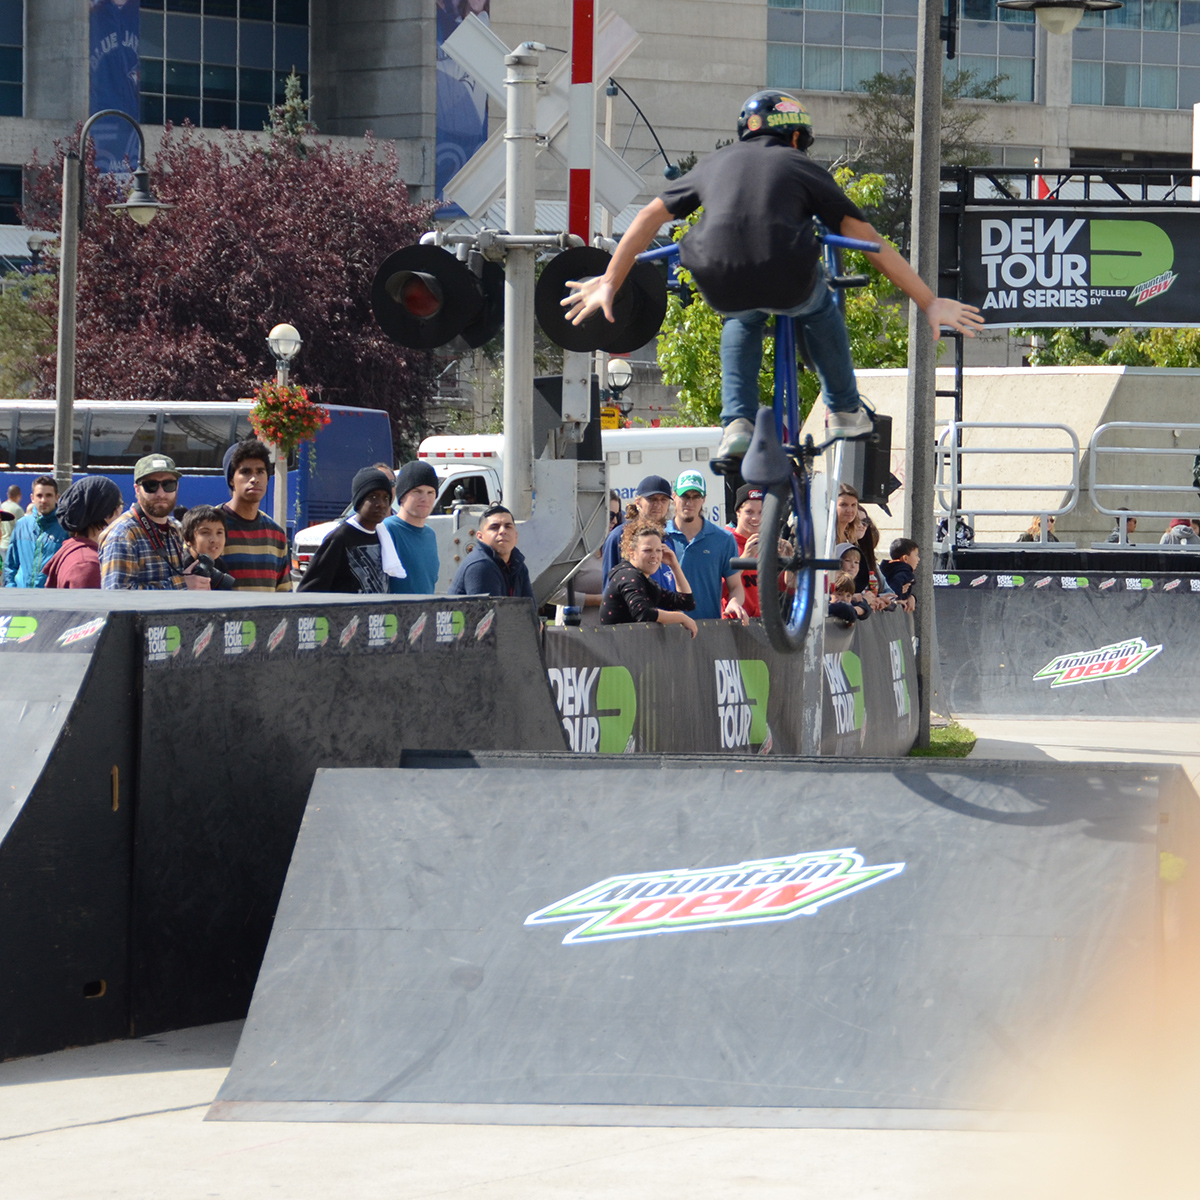 Tuck no hander at BMX Dew Tour Am Series in Toronto